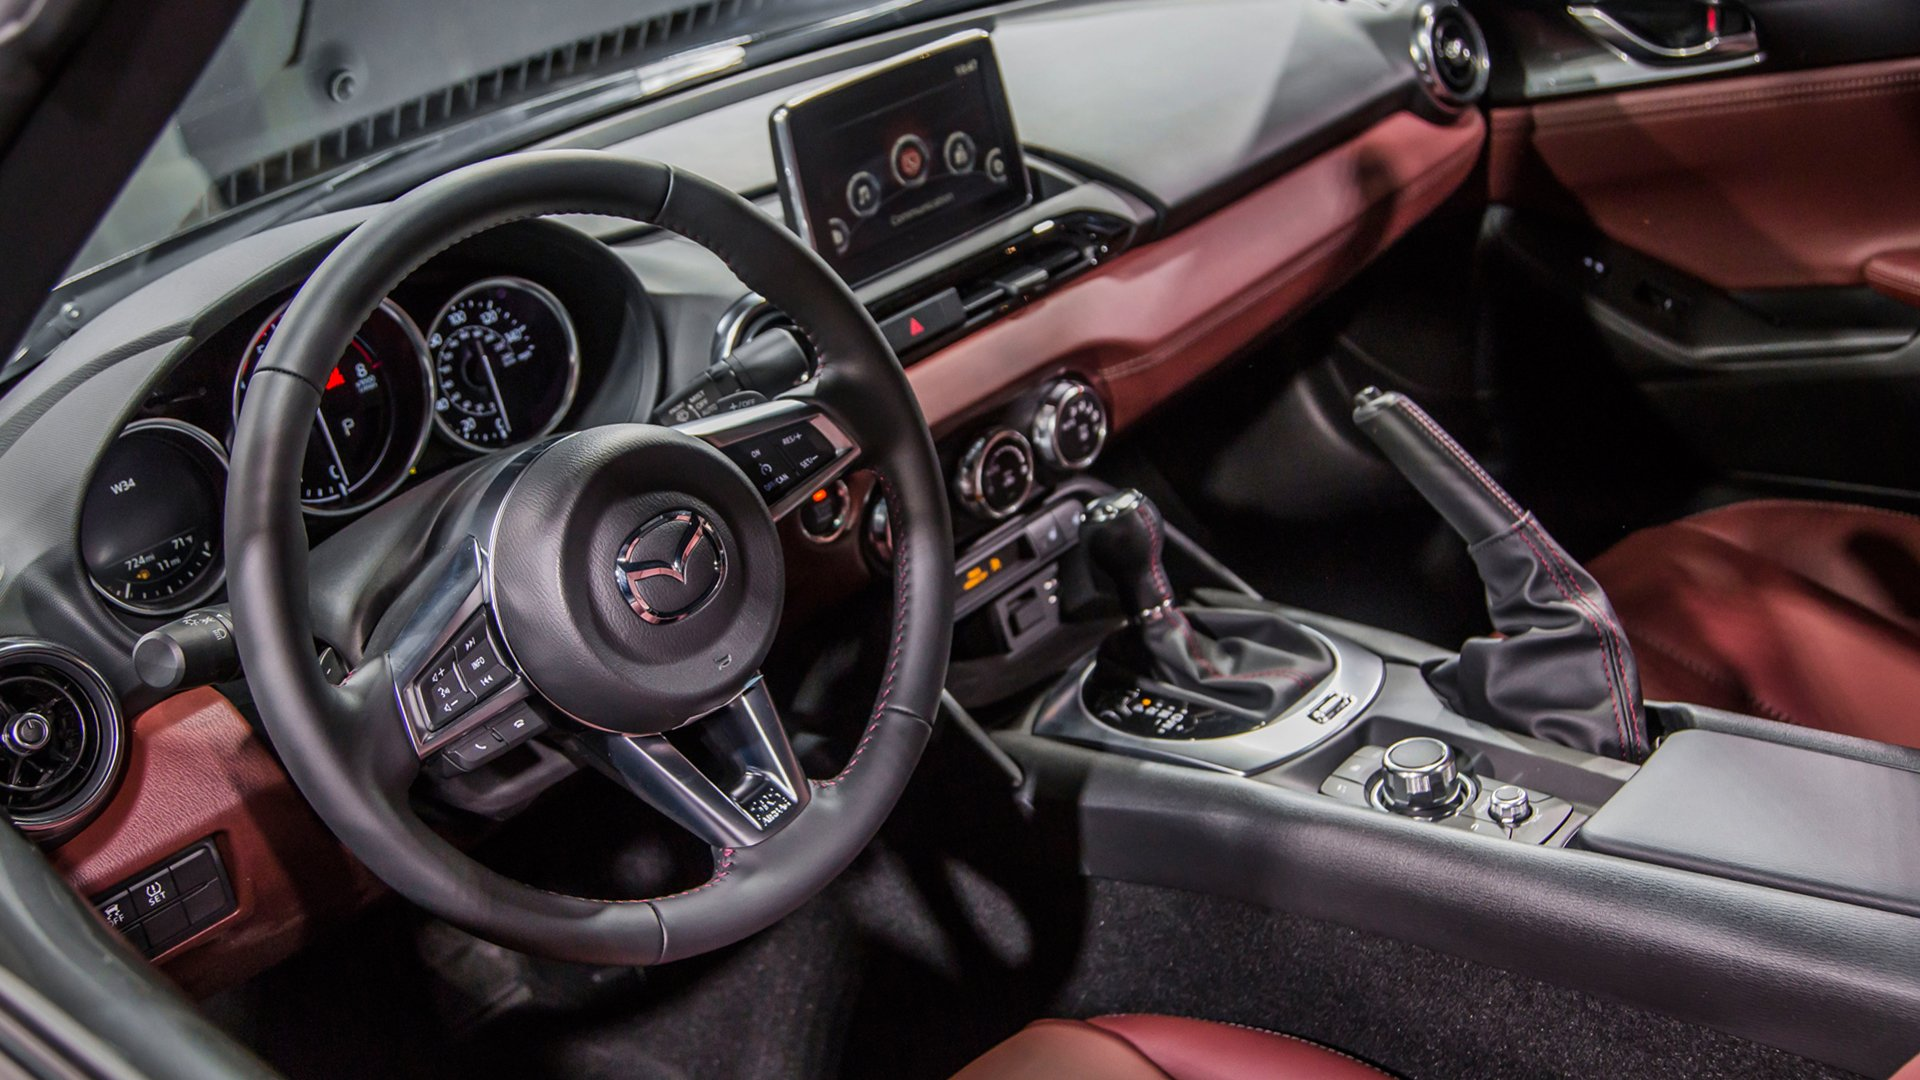 New 2019 Mazda MX 5 Interior Design